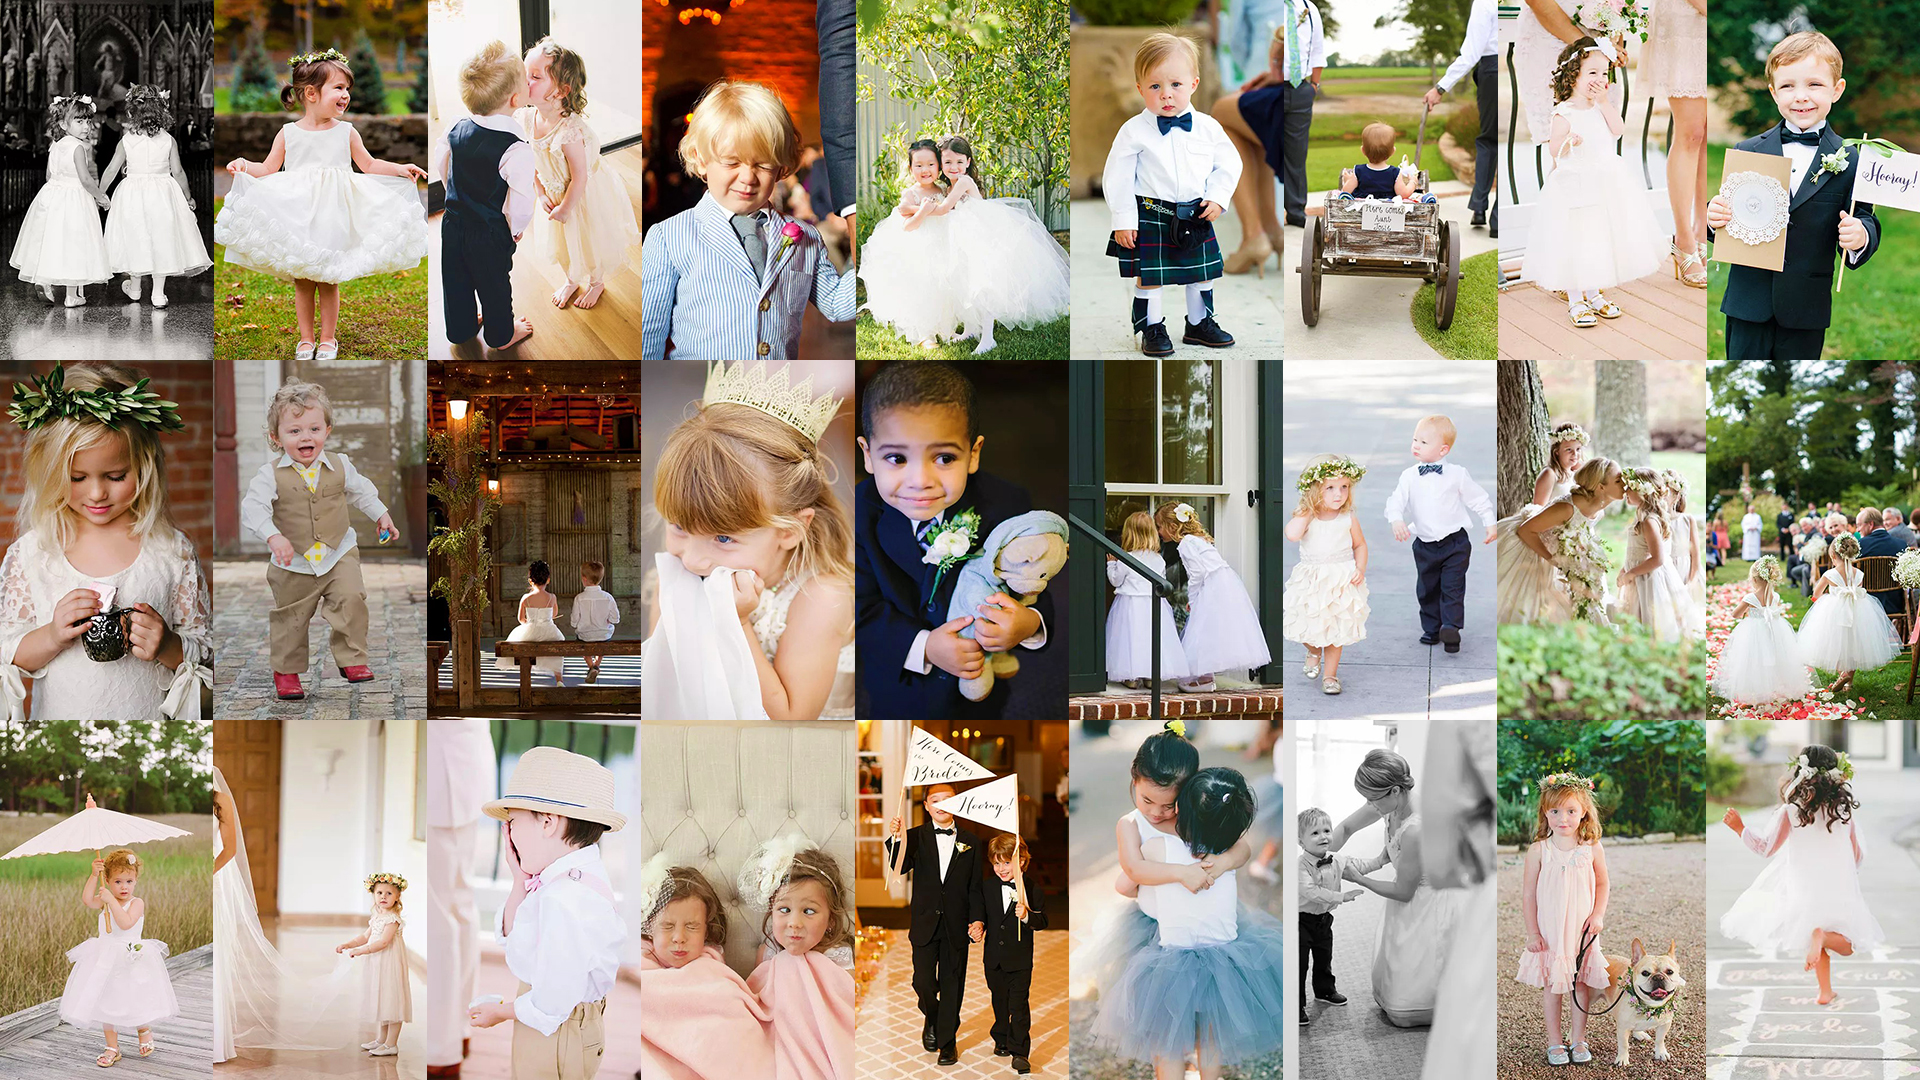 How To Photograph Kids At Wedding – Some Poses And Ideas